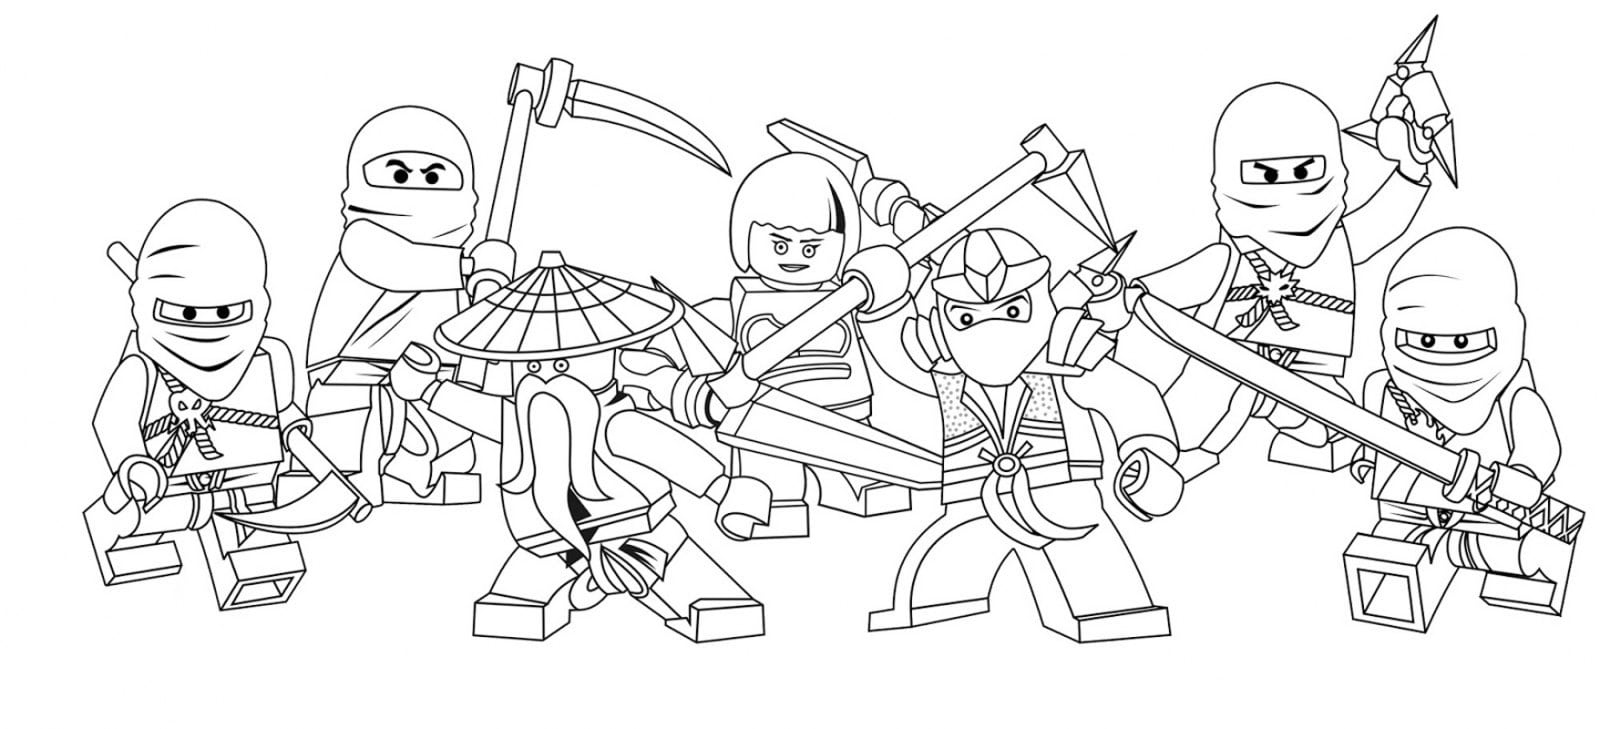 Lego Batman For Colorir Colouring Pages Coloring Pages For Girls 5